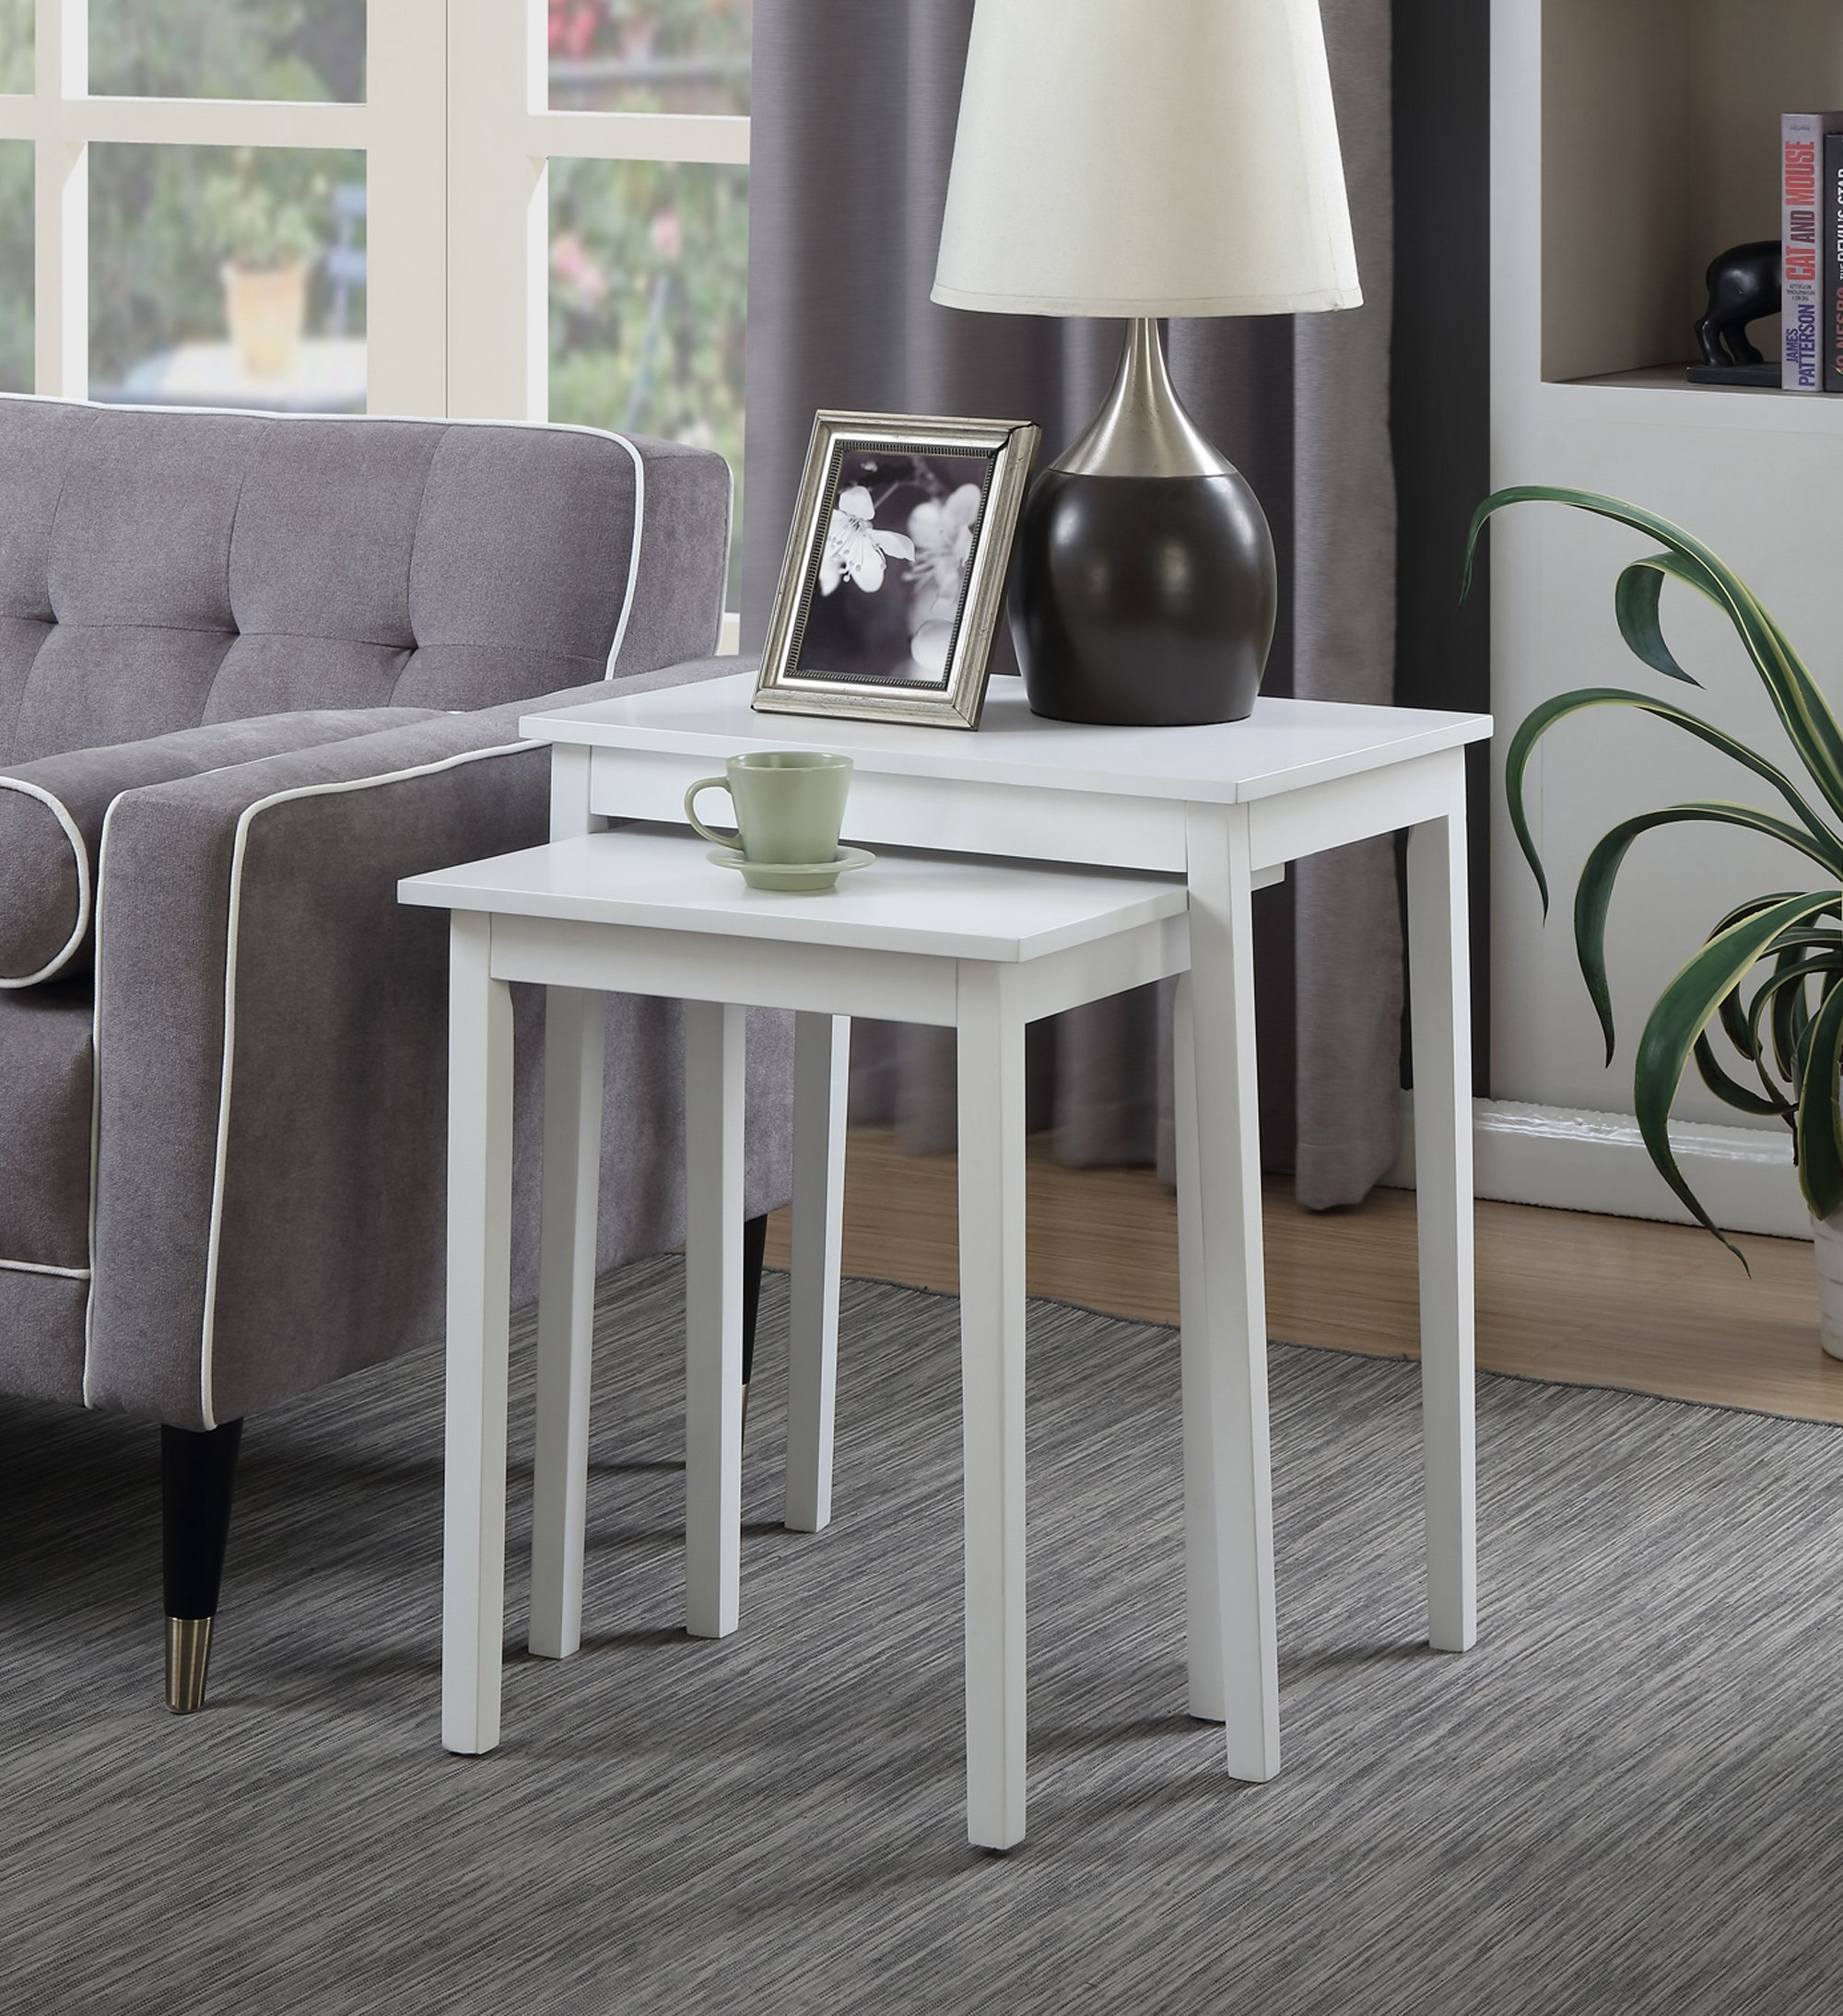 Convenience Concepts American Heritage Nesting End Tables, White by Convenience Concepts